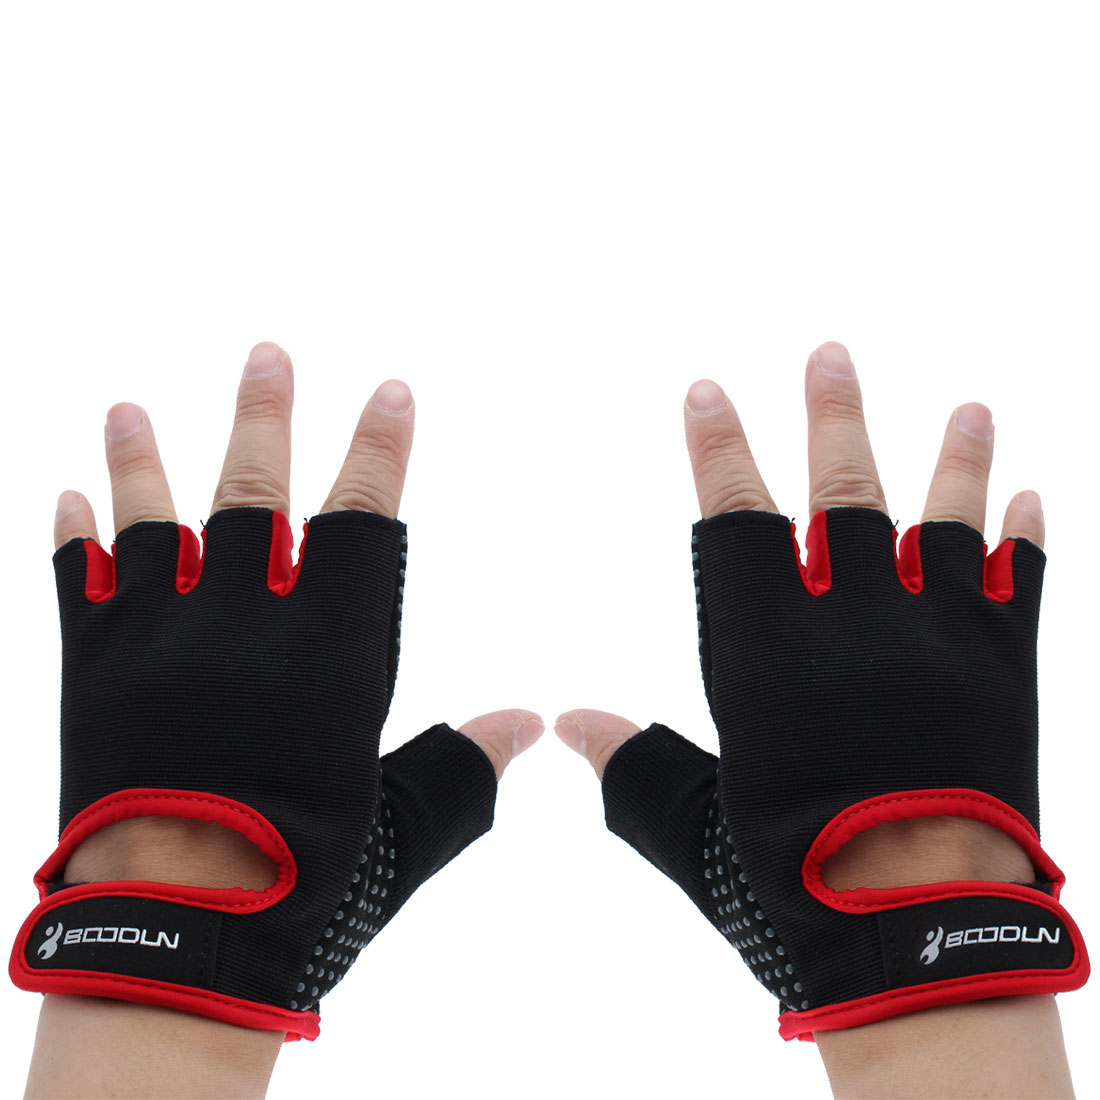 BOODUN Authorized Exercise Weight Biking Lifting Training Microfiber Non-slip Fitness Half Finger Gloves Red M